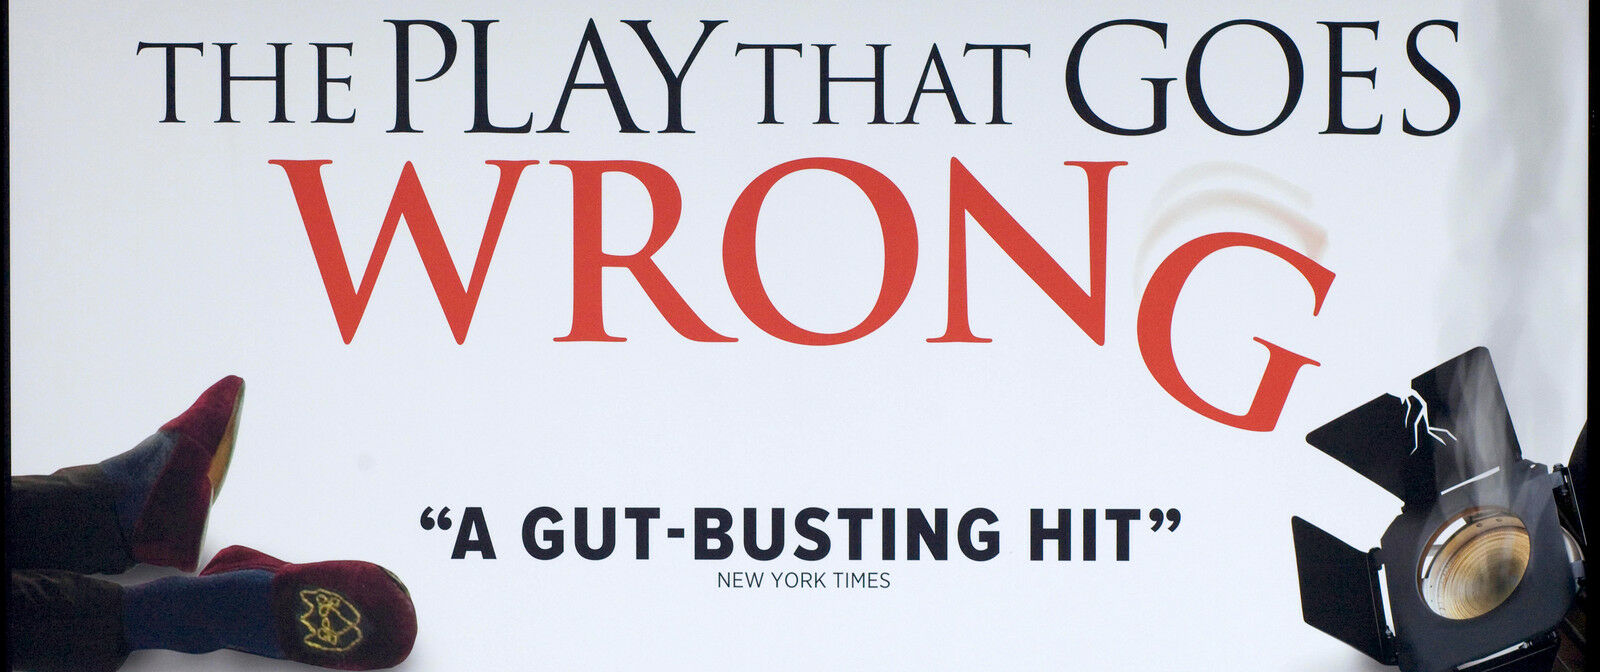 The Play That Goes Wrong New York | New York, NY | Lyceum Theatre New York | December 13, 2017